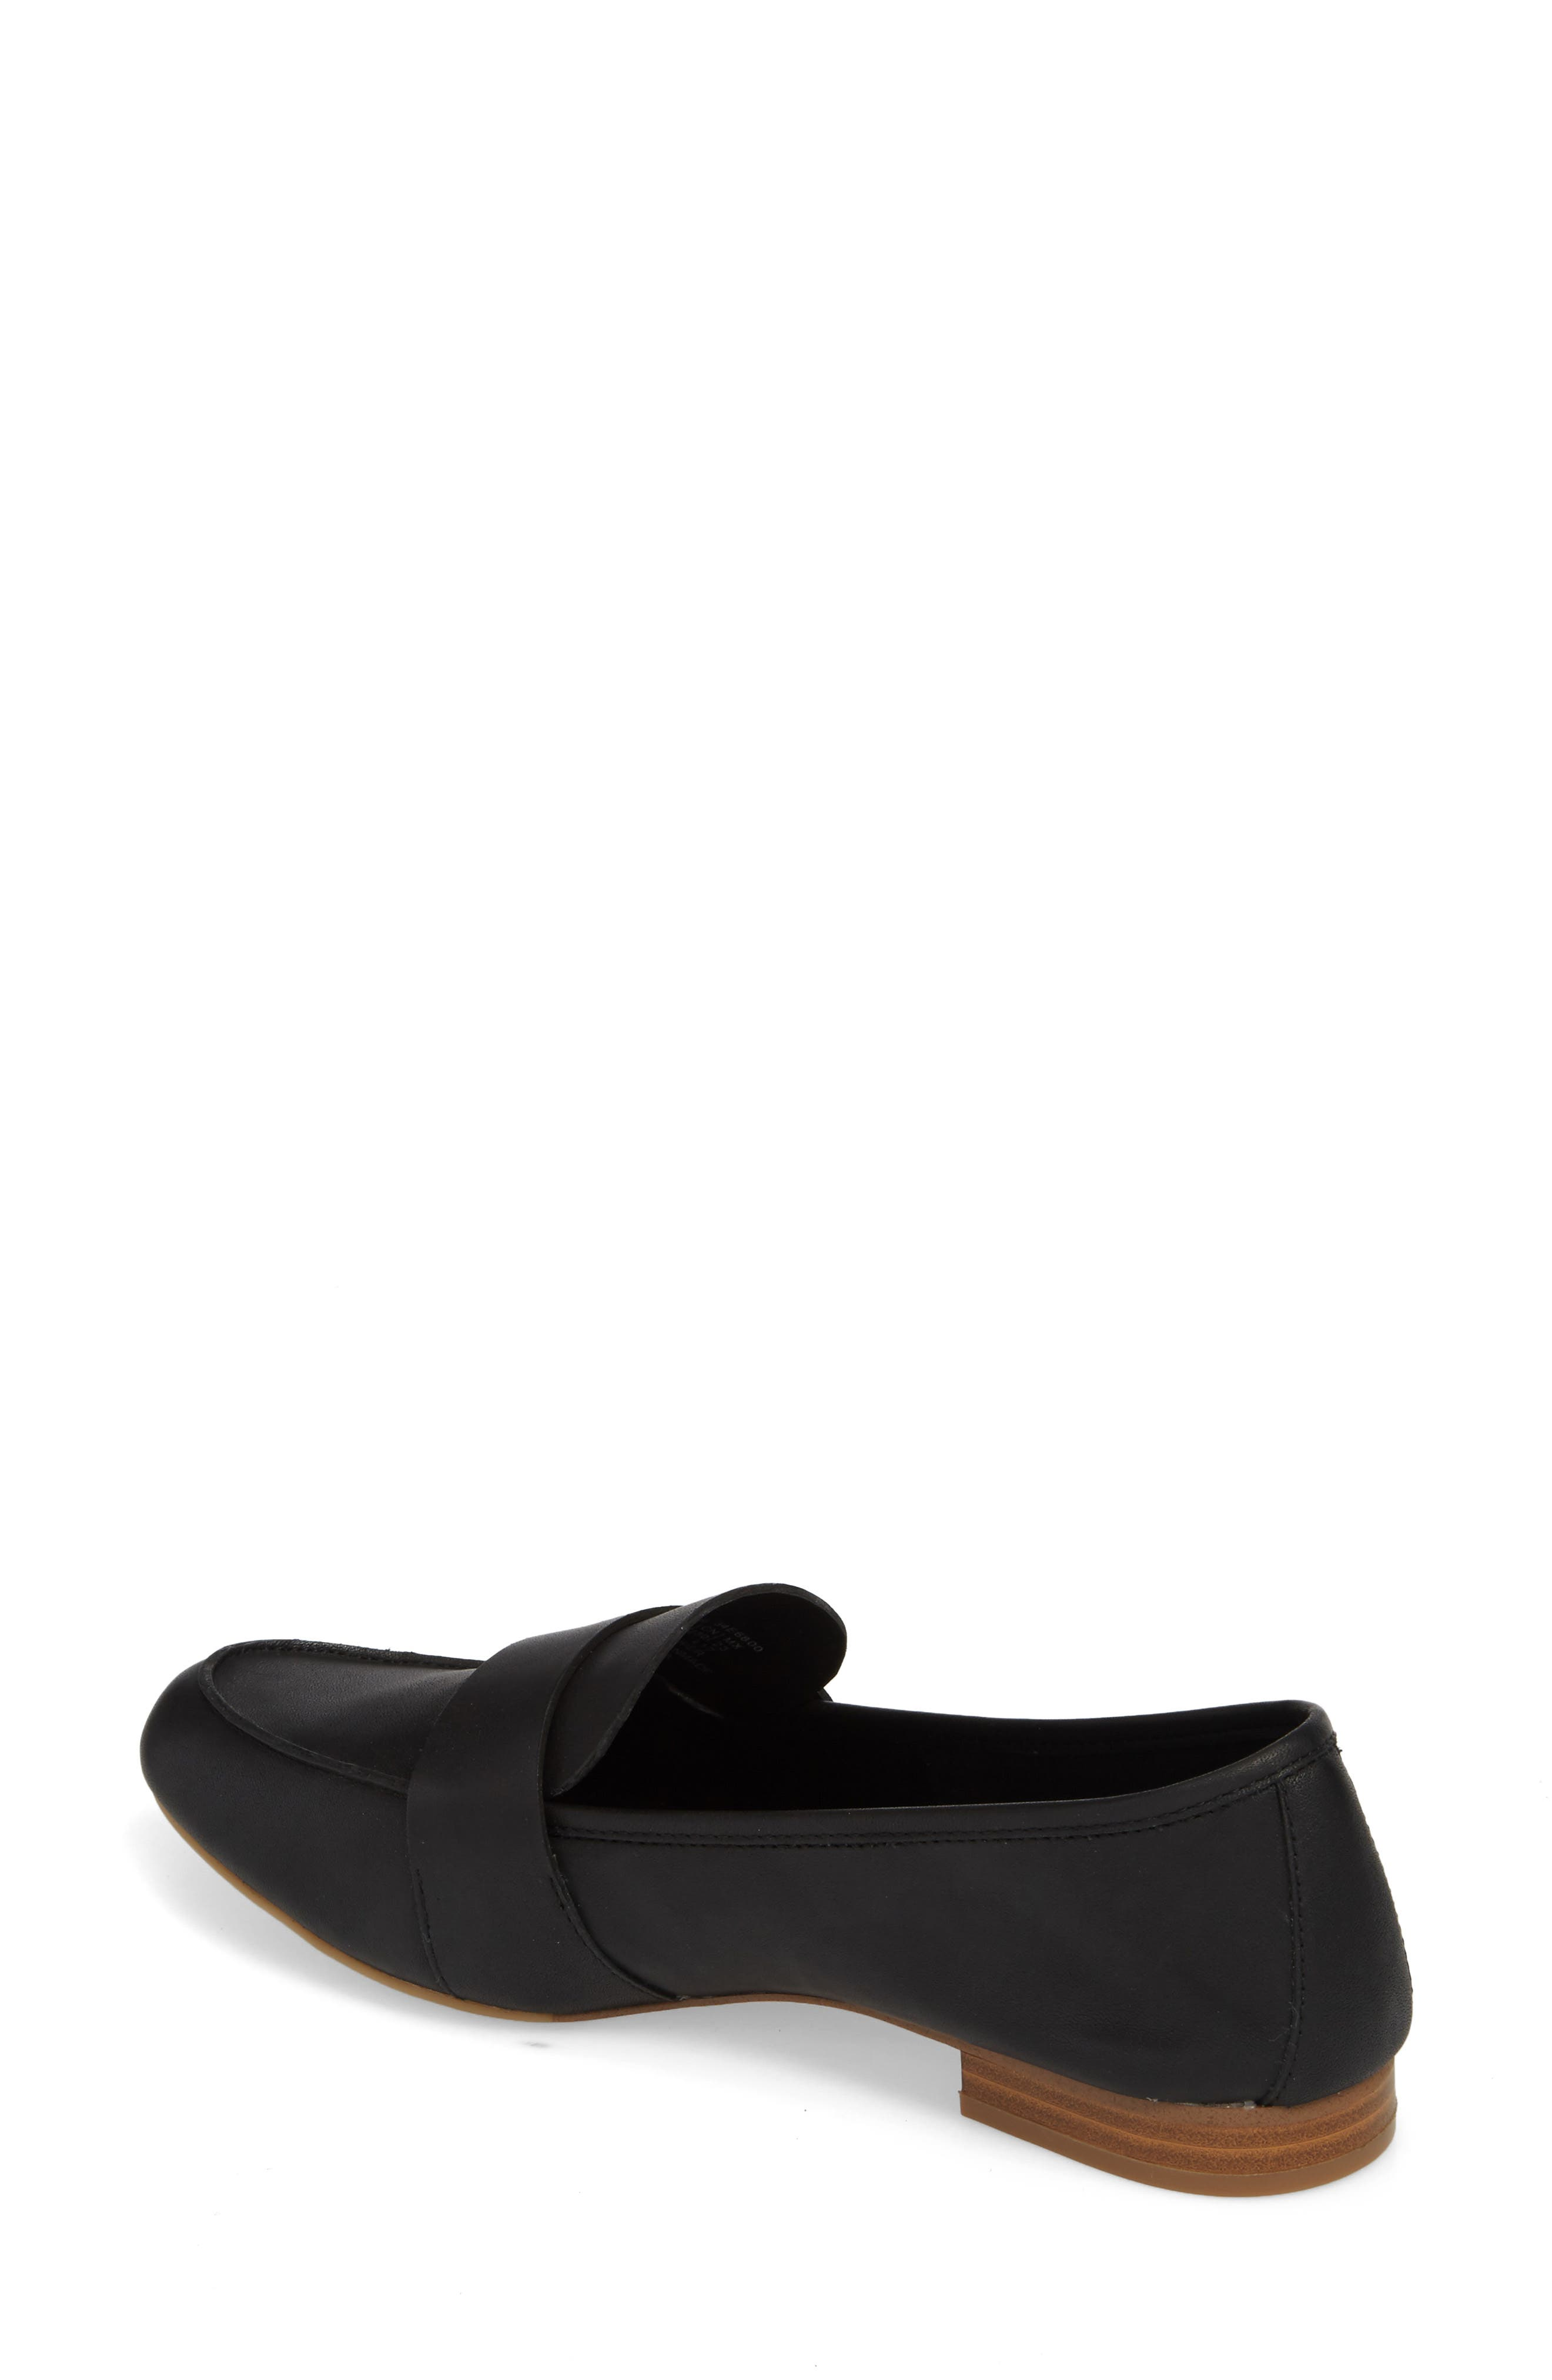 Cemmie Loafer,                             Alternate thumbnail 2, color,                             BLACK LEATHER